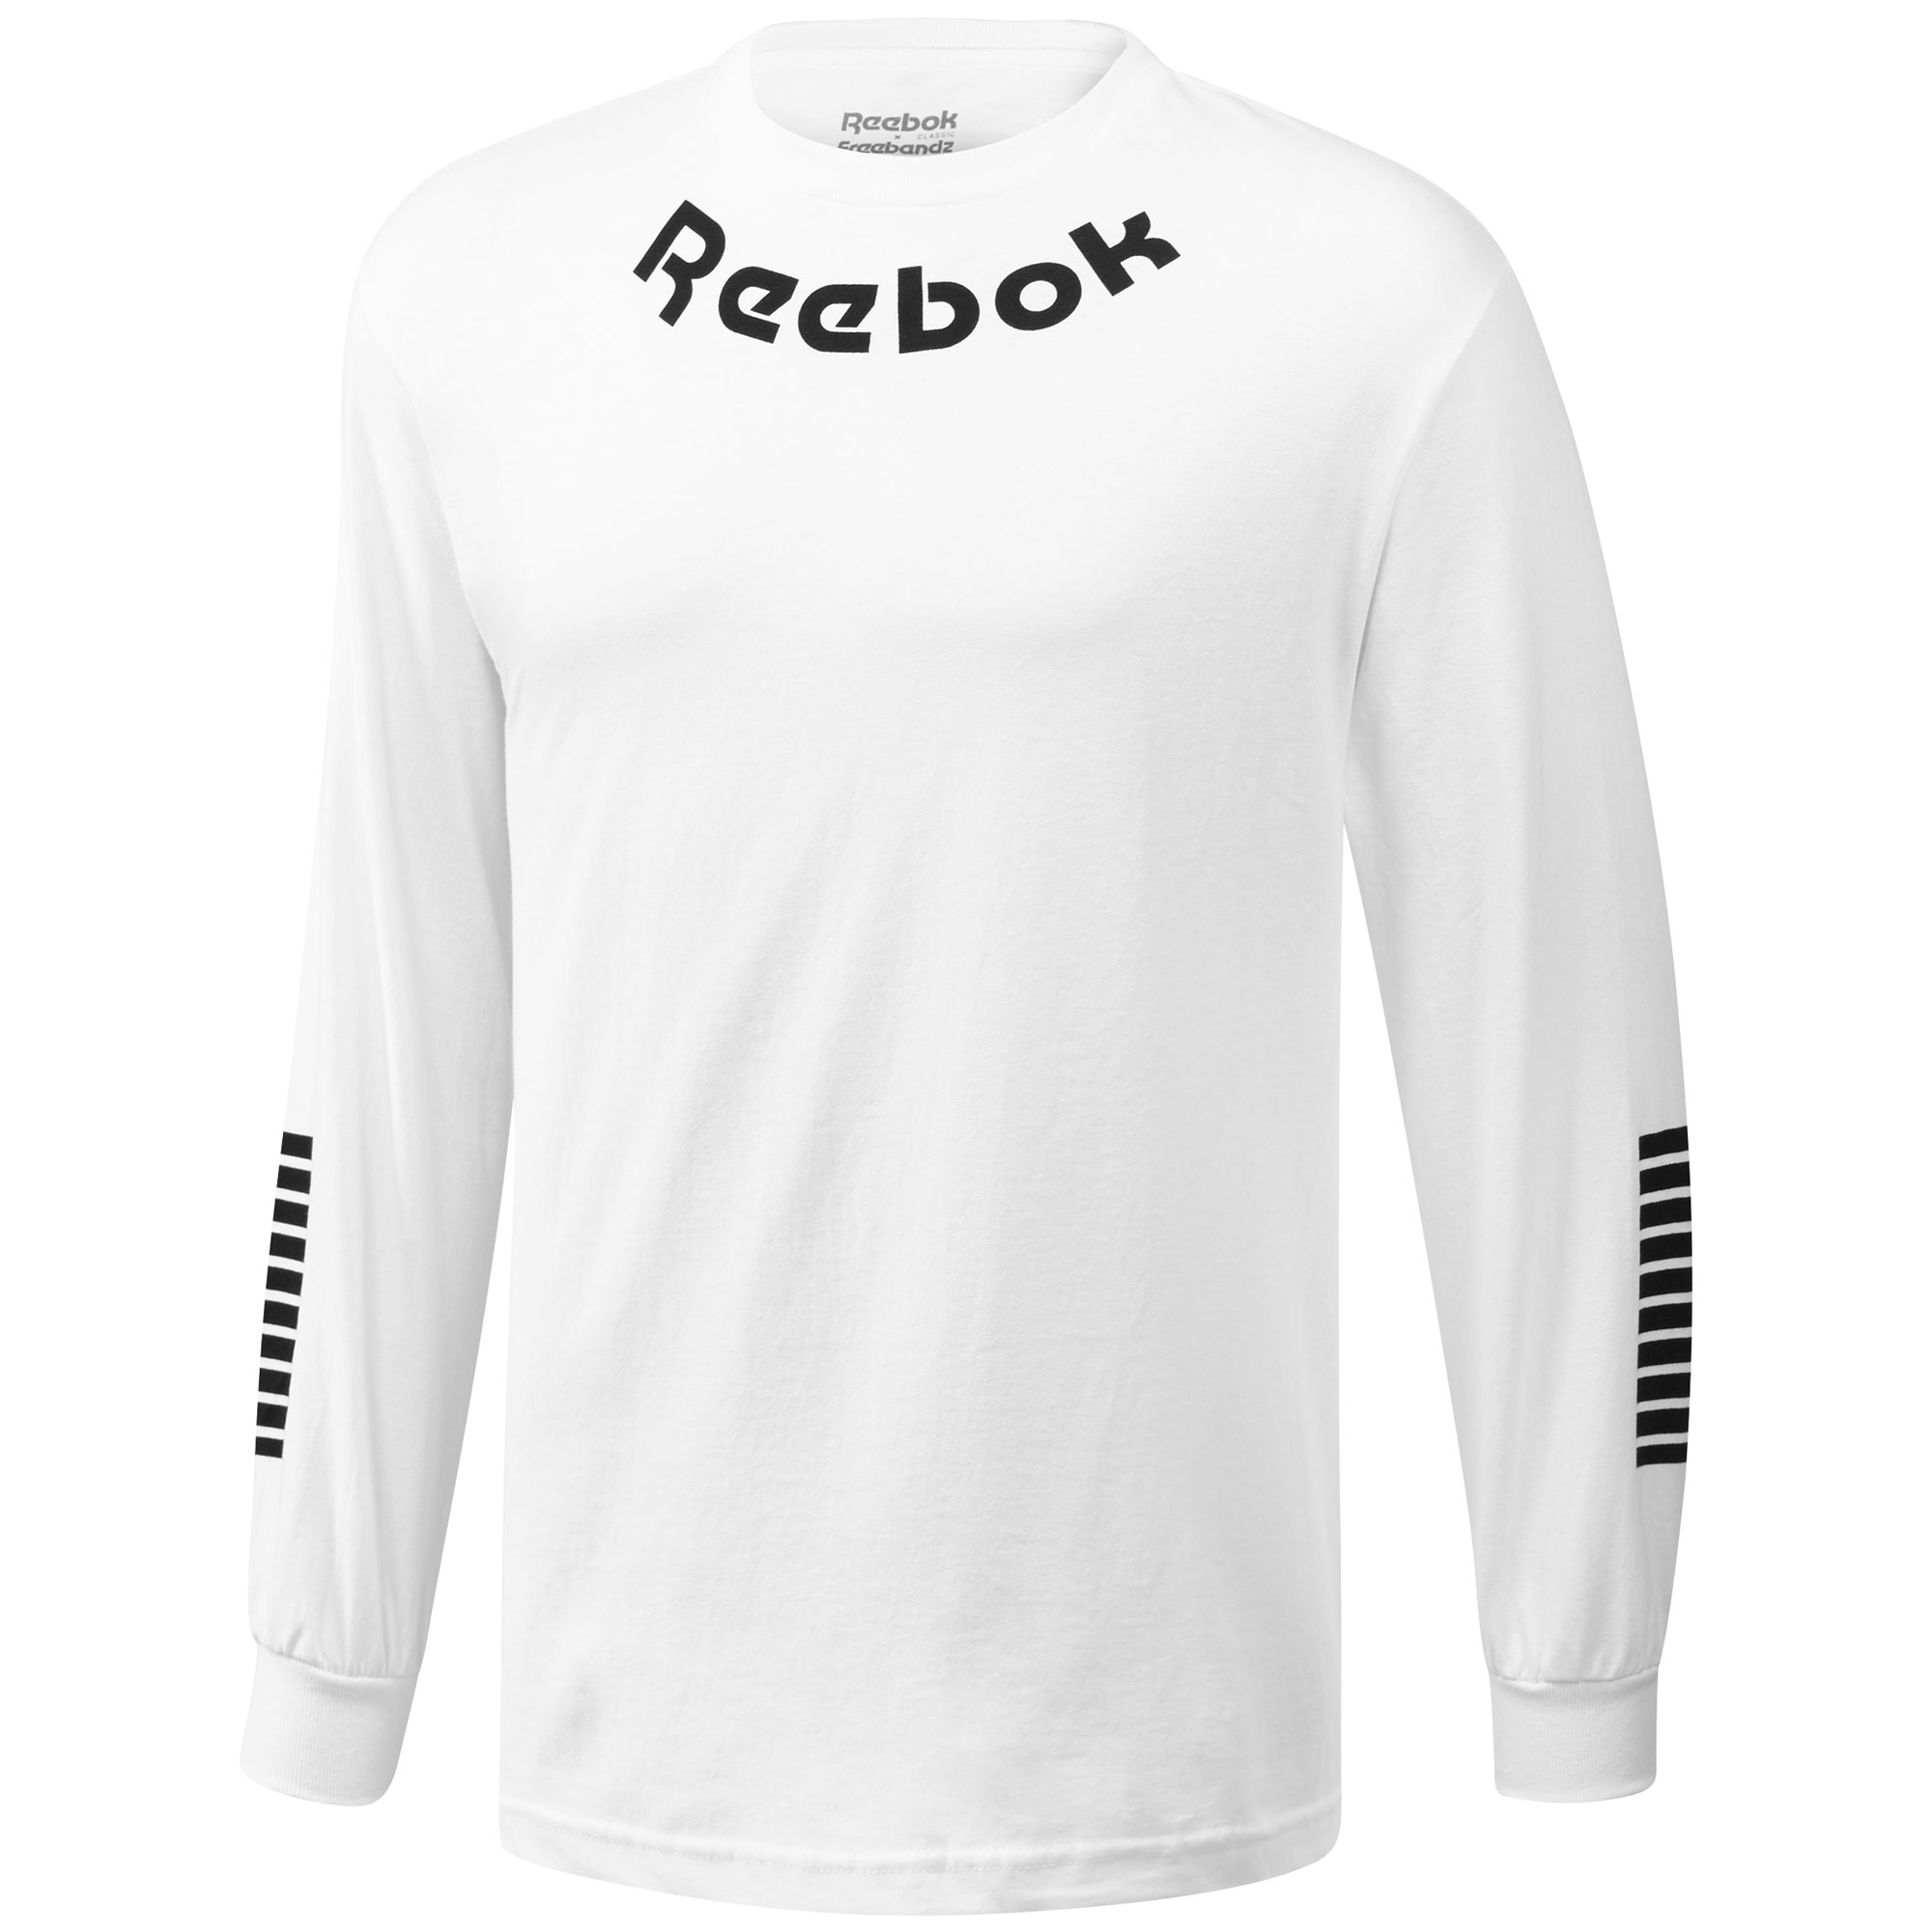 Future Reebok Freebandz Apparel 4